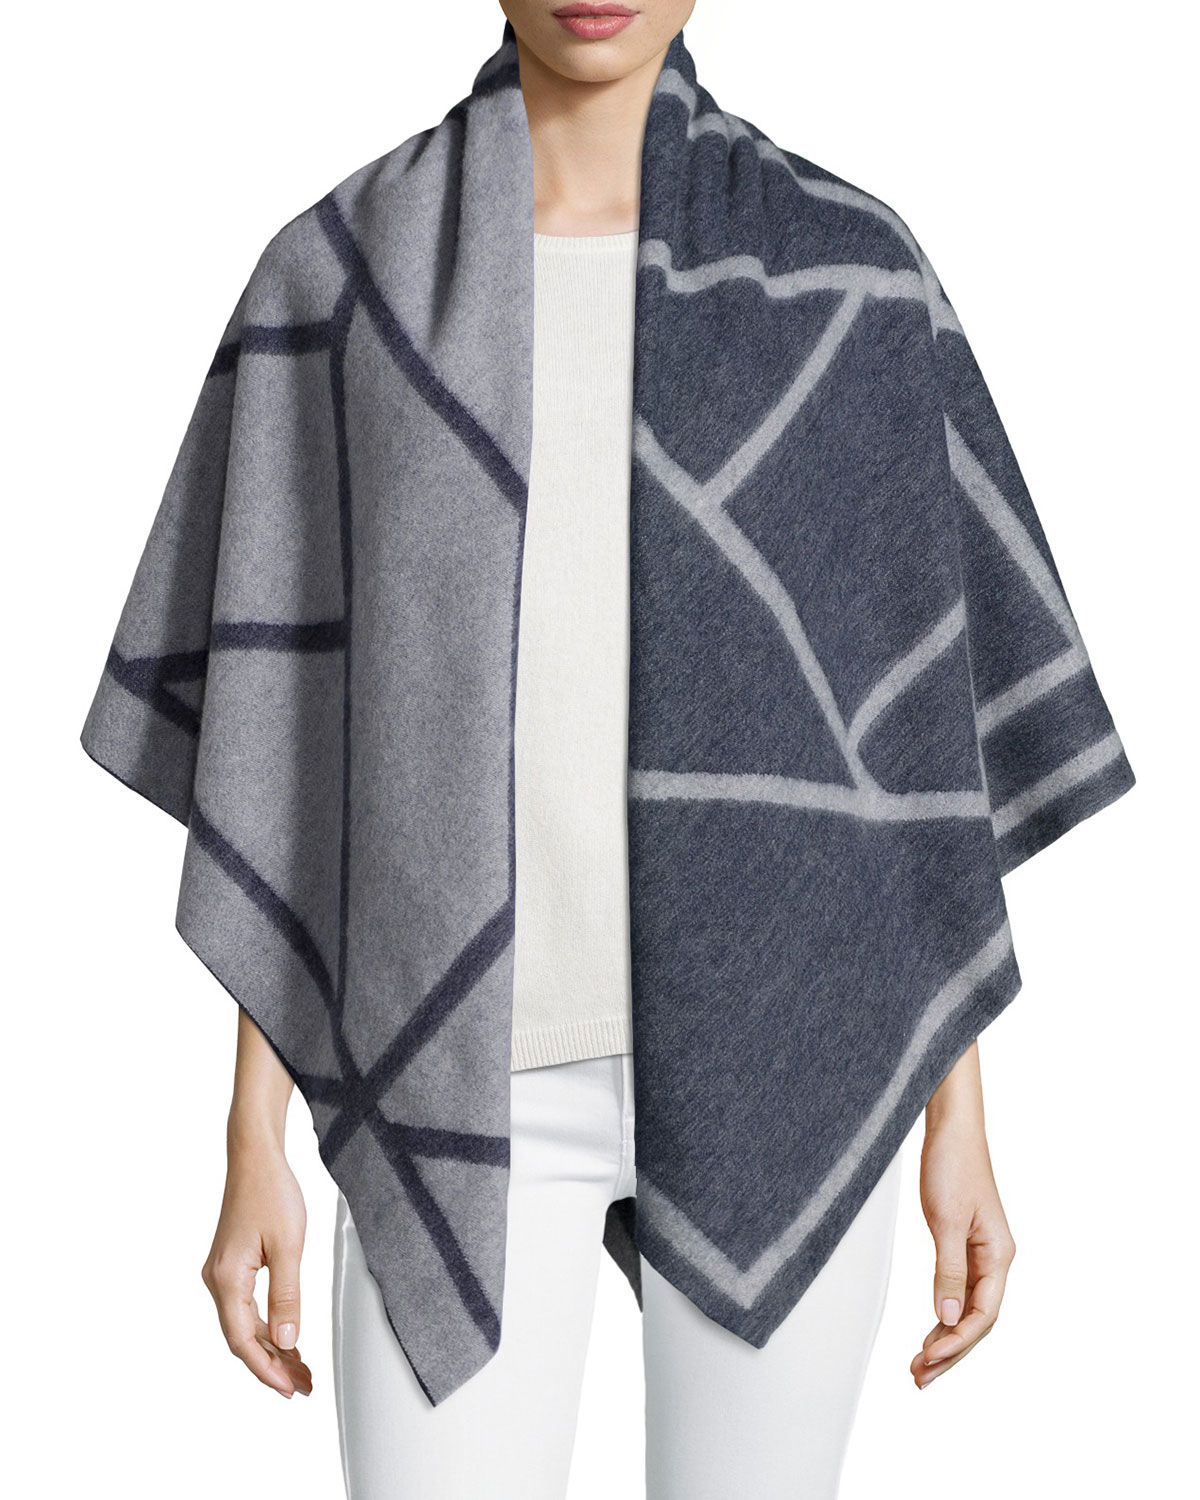 Fret Jacquard Blanket Scarf, Women's, Brown - Tory Burch